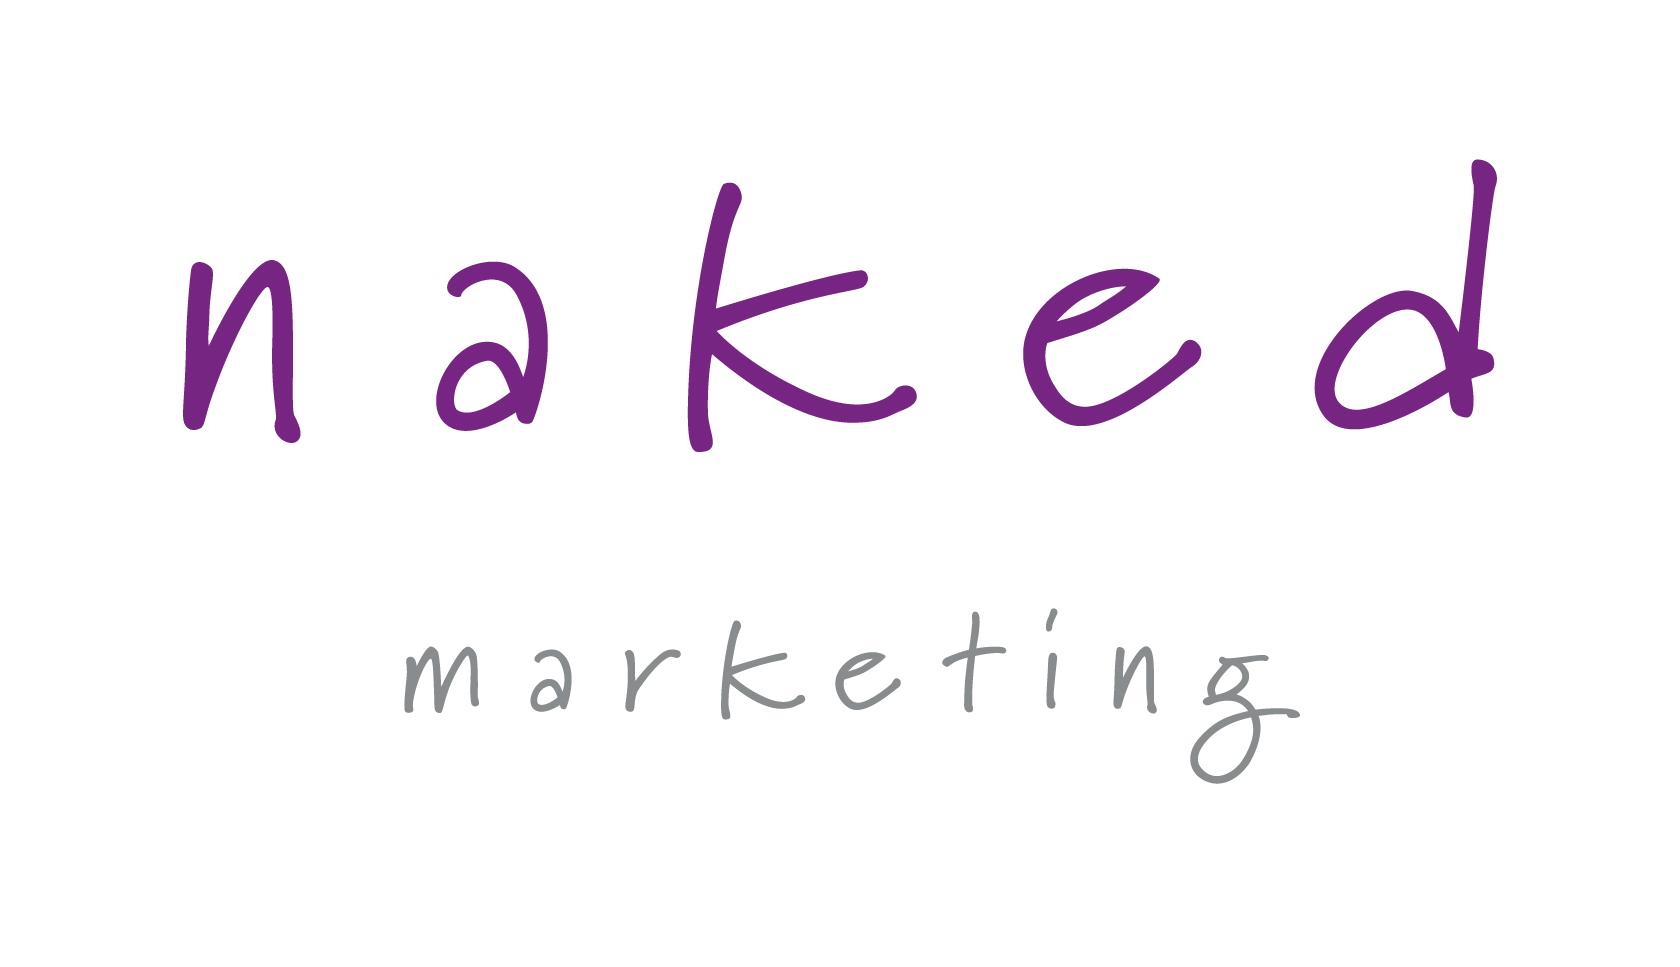 Naked Marketing